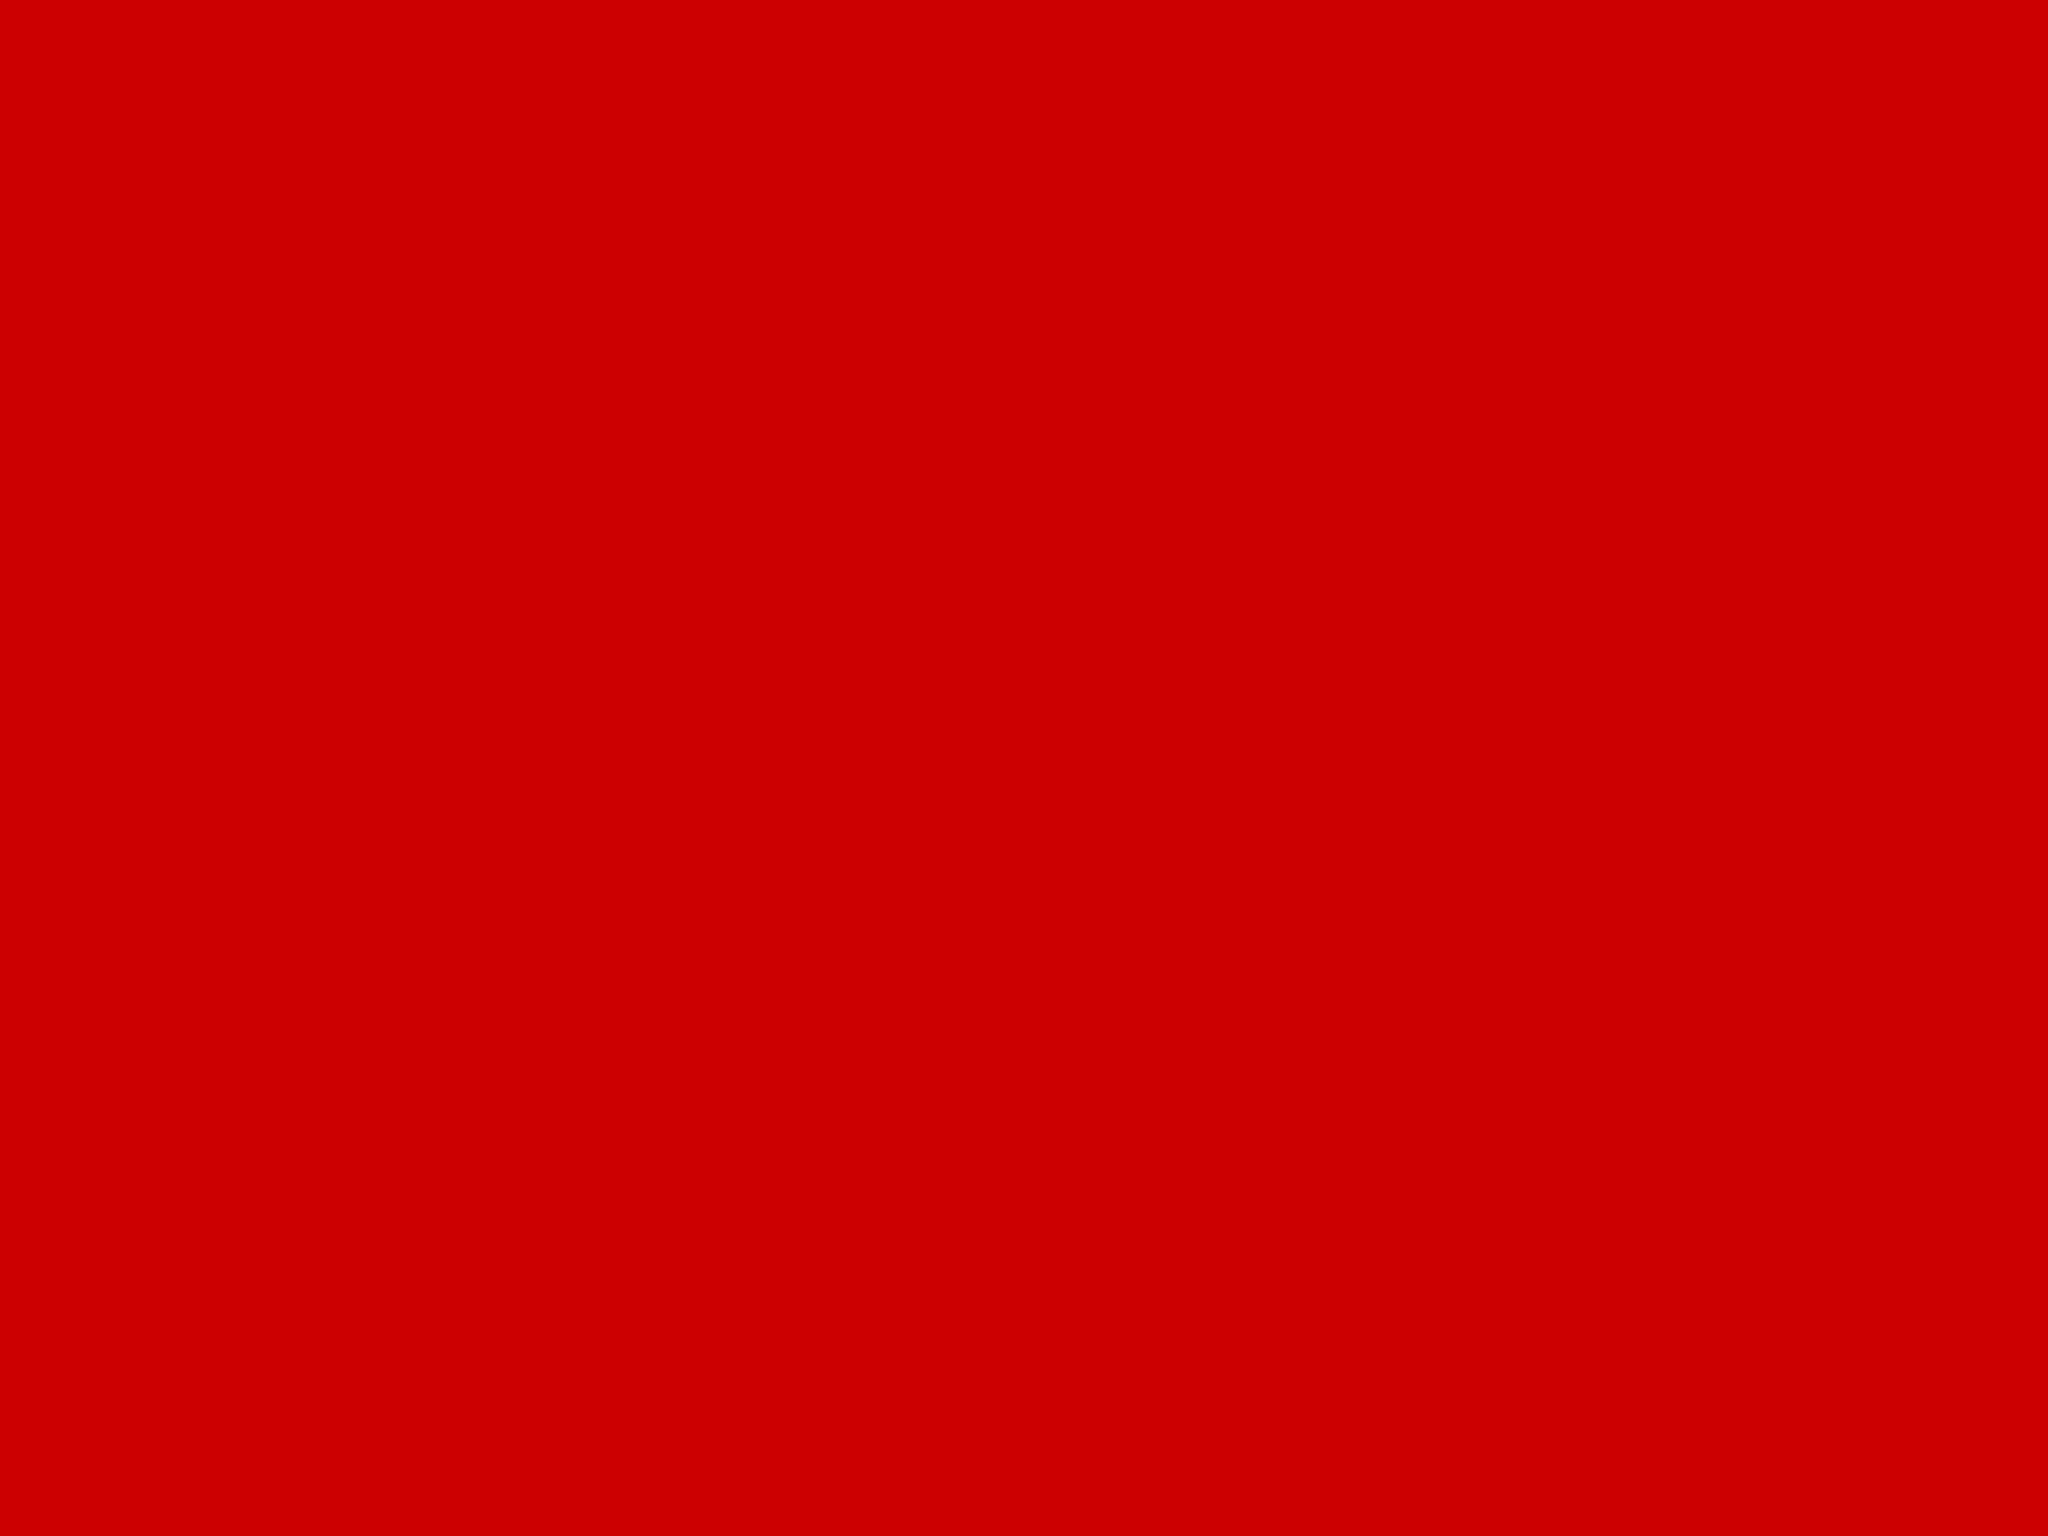 2048x1536 Boston University Red Solid Color Background